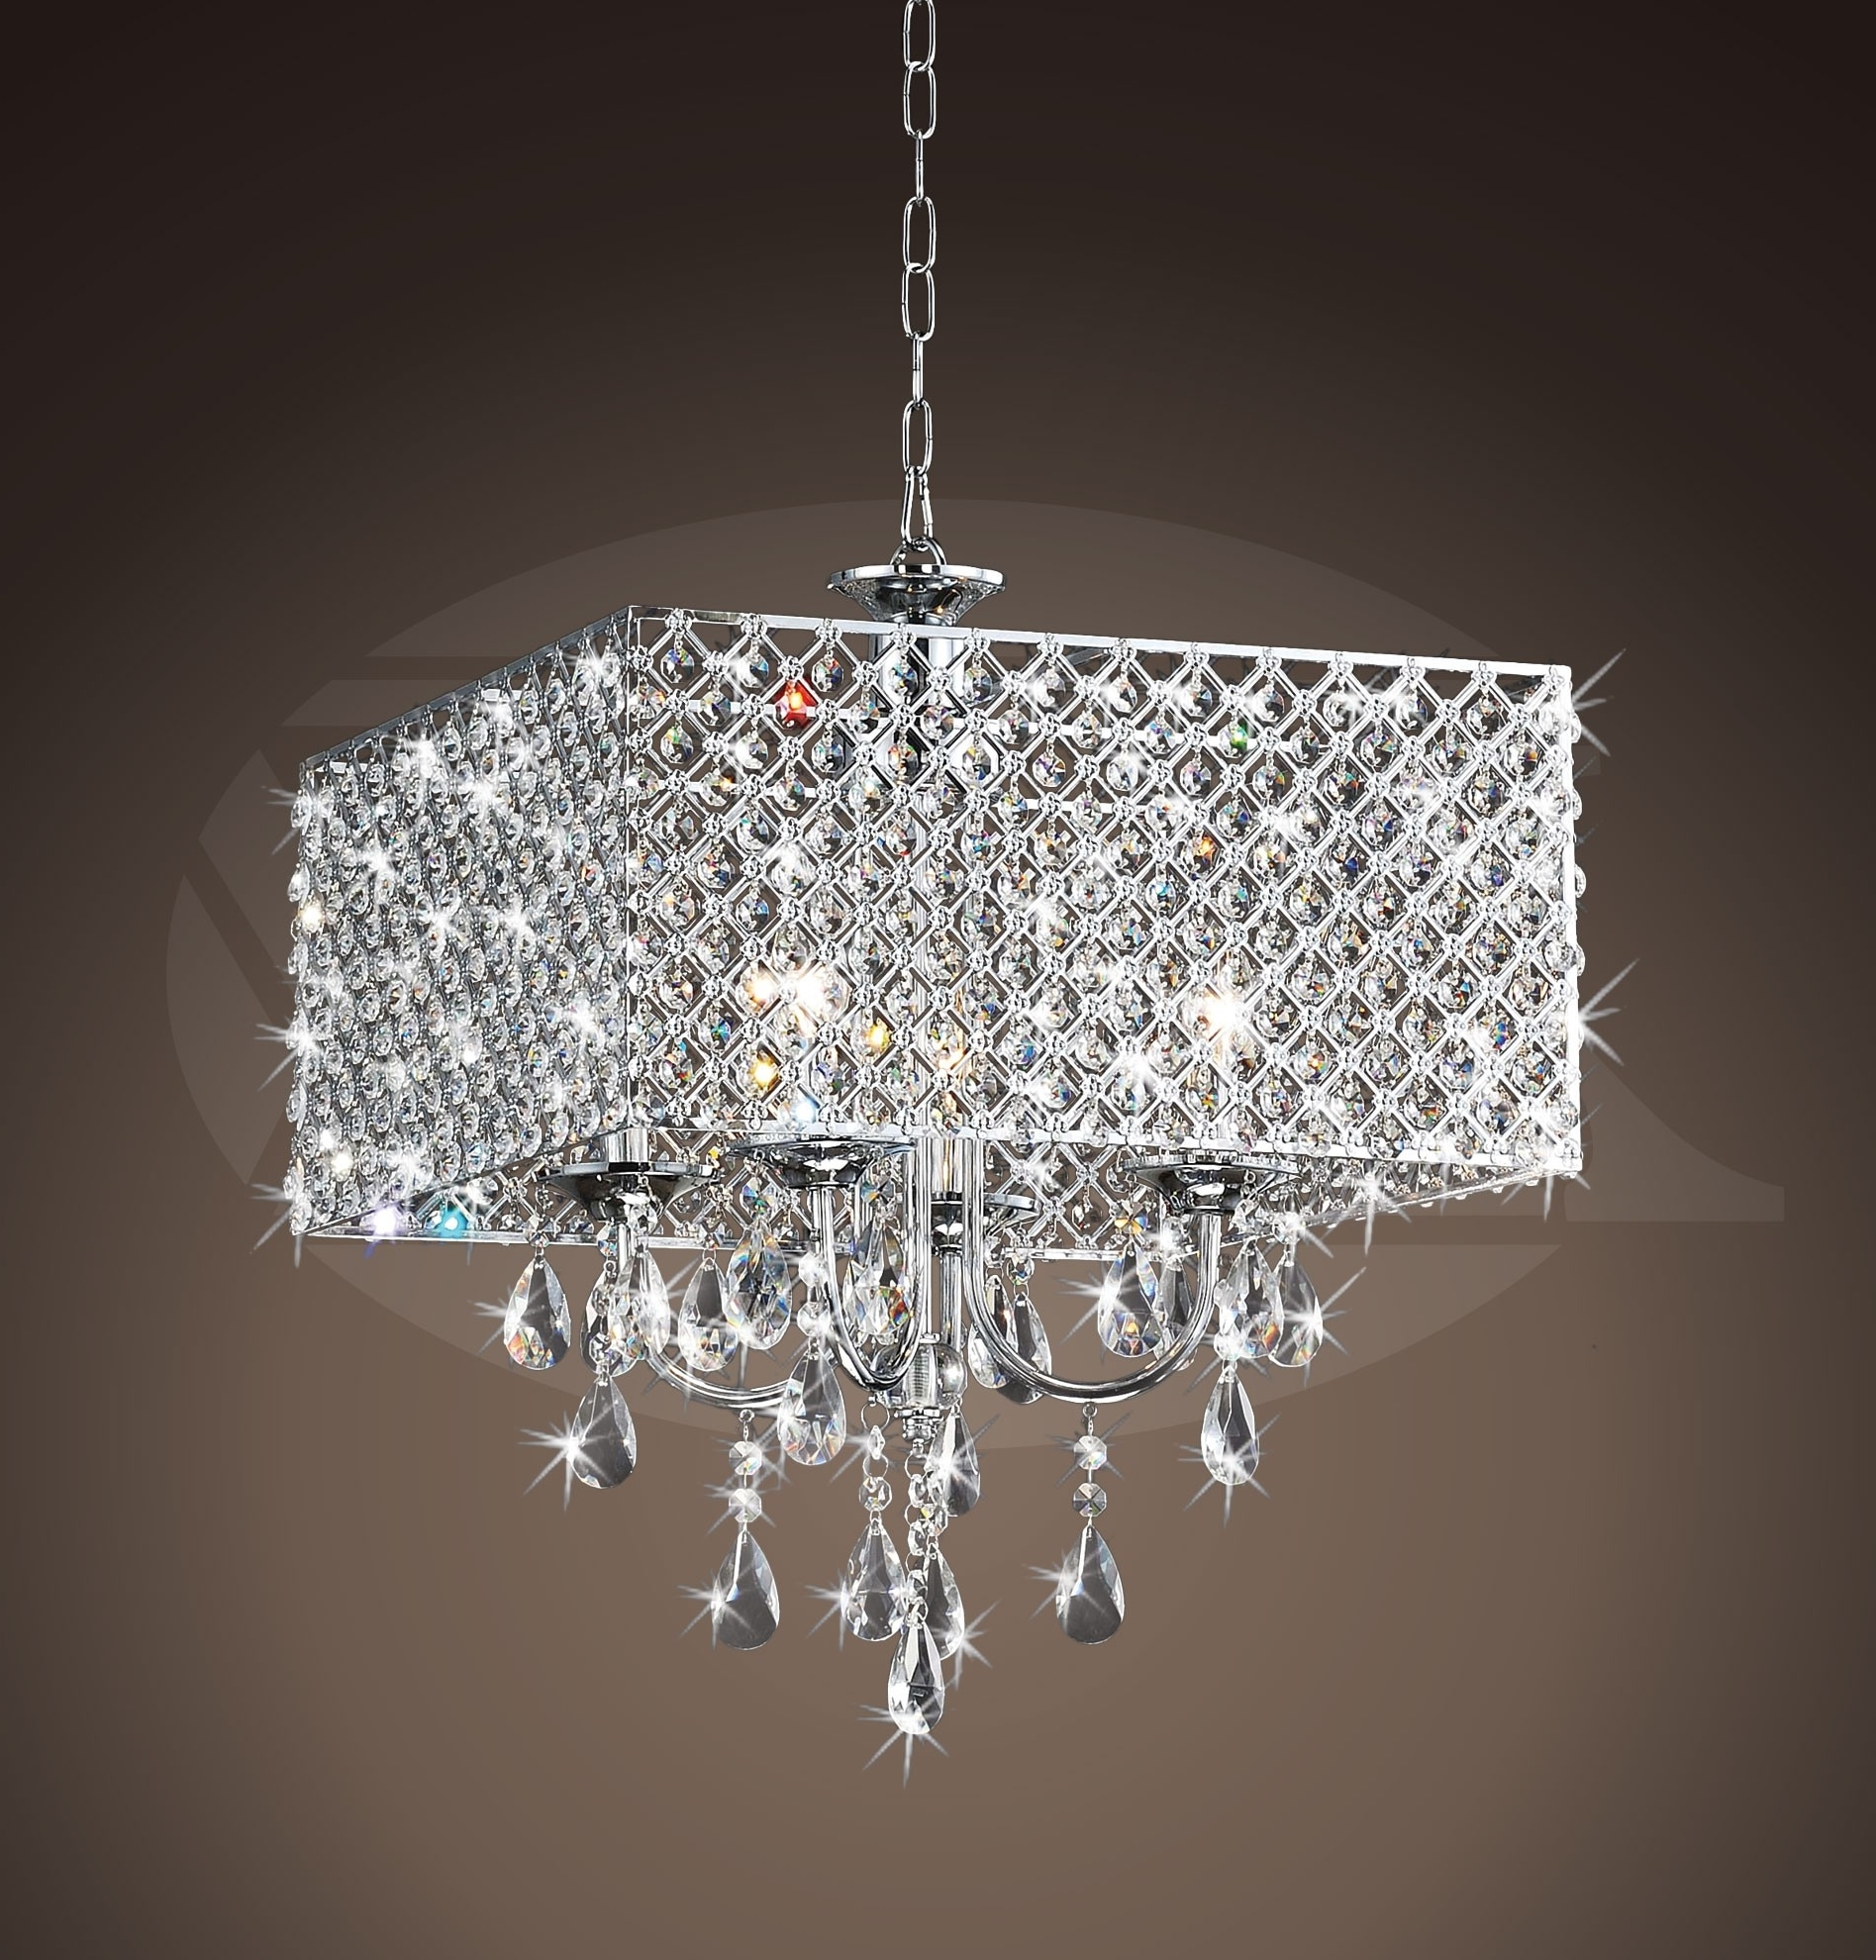 "Best And Newest Rosemary Elegant Crystal Chrome 4 Light Square Chandelier (16""h X 17 With 4 Light Chrome Crystal Chandeliers (View 7 of 15)"